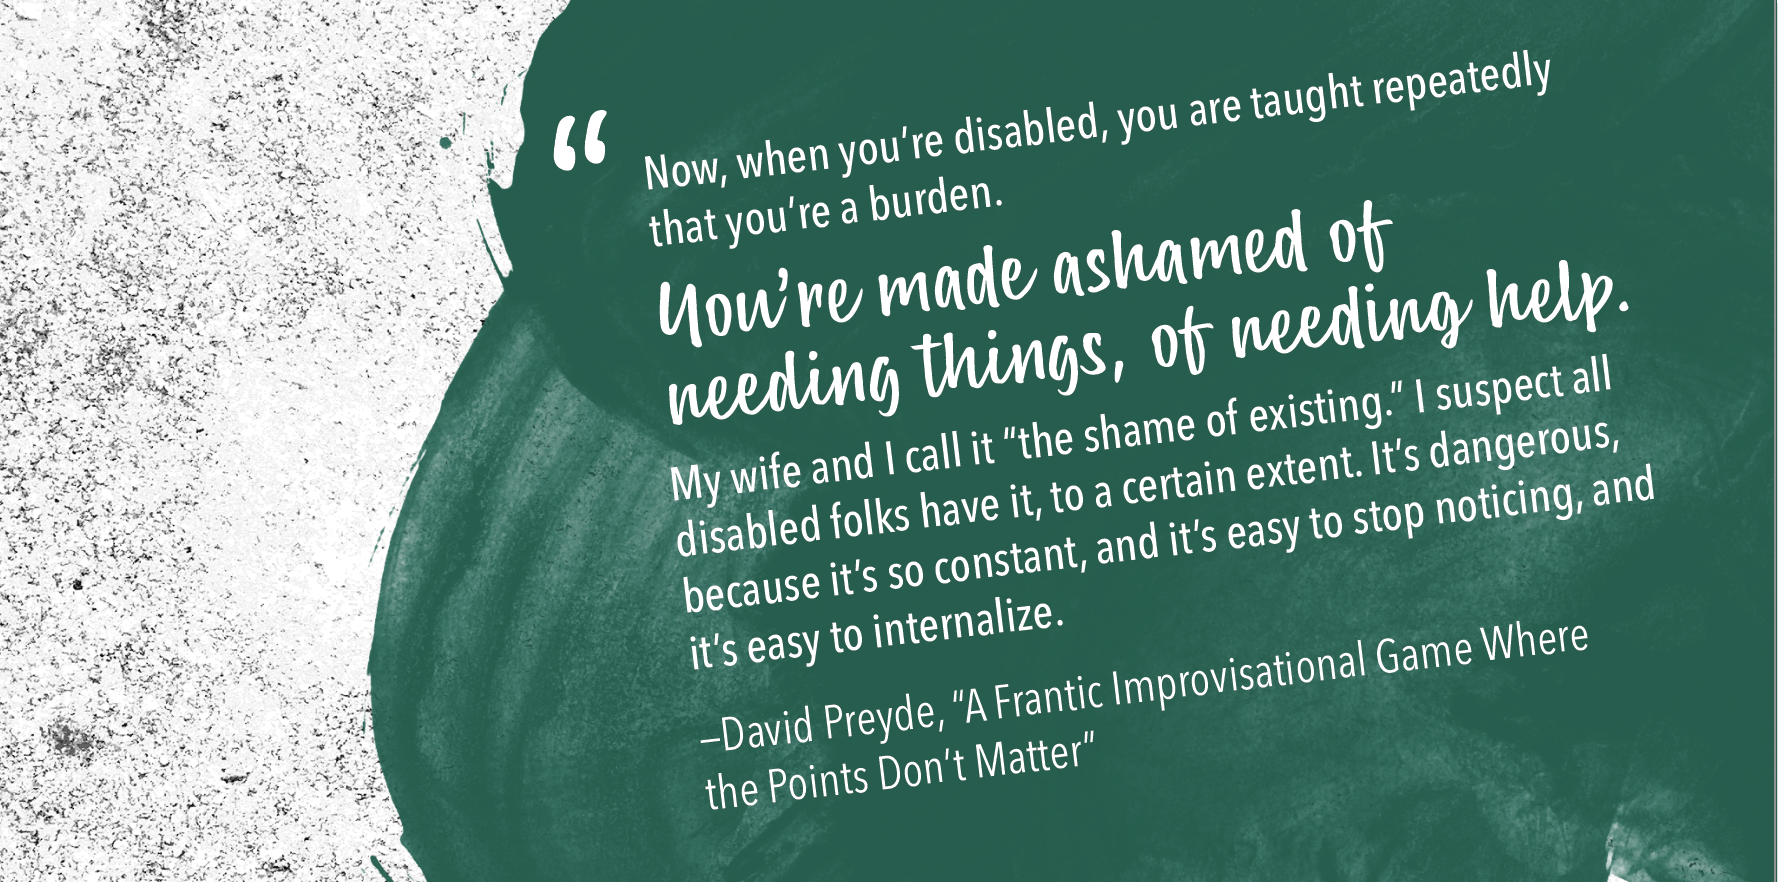 """A graphic with a quote from David Preyde. It says, """"Now, when you're disabled, you are made to feel that you're a burden. You're made ashamed of needing things, of needing help. My wife and I call it 'the shame of existing.' I suspect all disabled folks have it, to a certain extent. It's dangerous, because it's so constant, and it's easy to stop noticing, and it's easy to internalize."""" —David Preyde, A Frantic Improvisational Game Where the Points Don't Matter"""